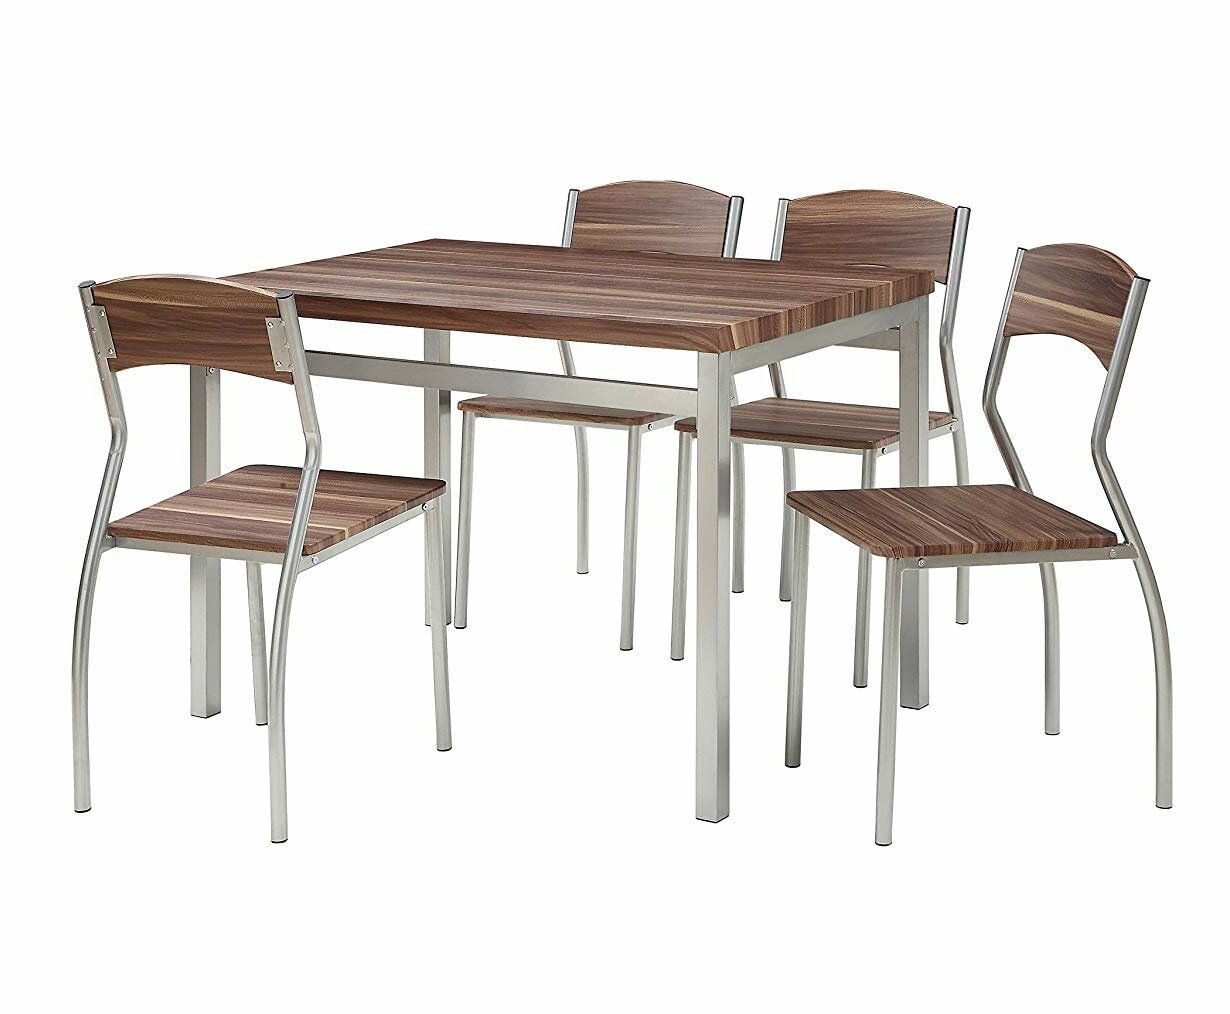 Kaelin 5 Piece Dining Set With Most Current Shepparton Vintage 3 Piece Dining Sets (View 10 of 20)